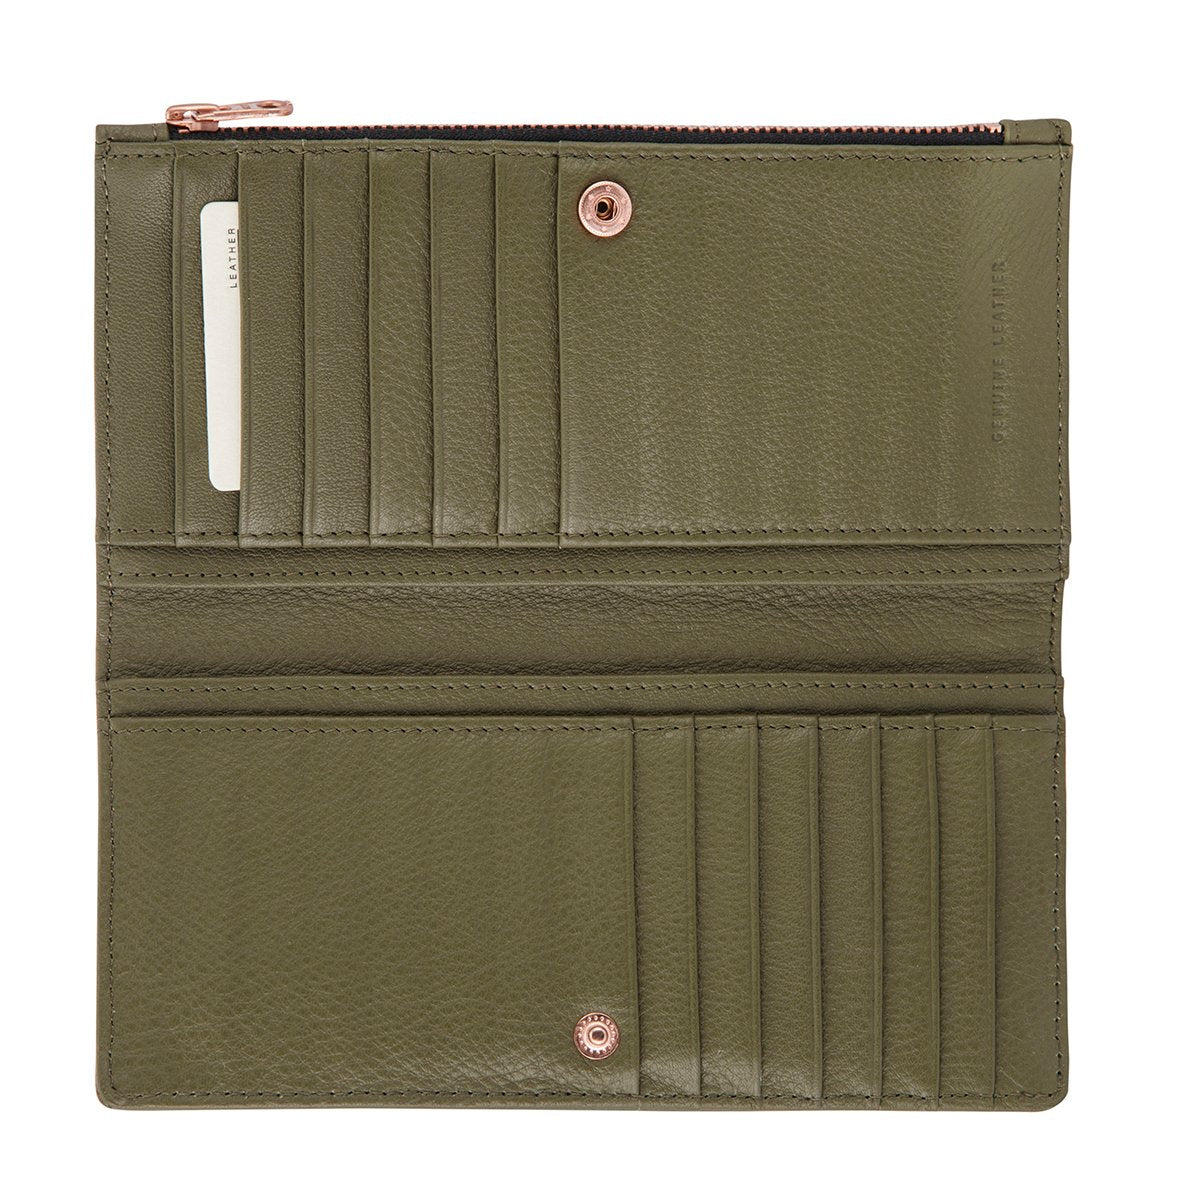 In The Beginning Wallet khaki